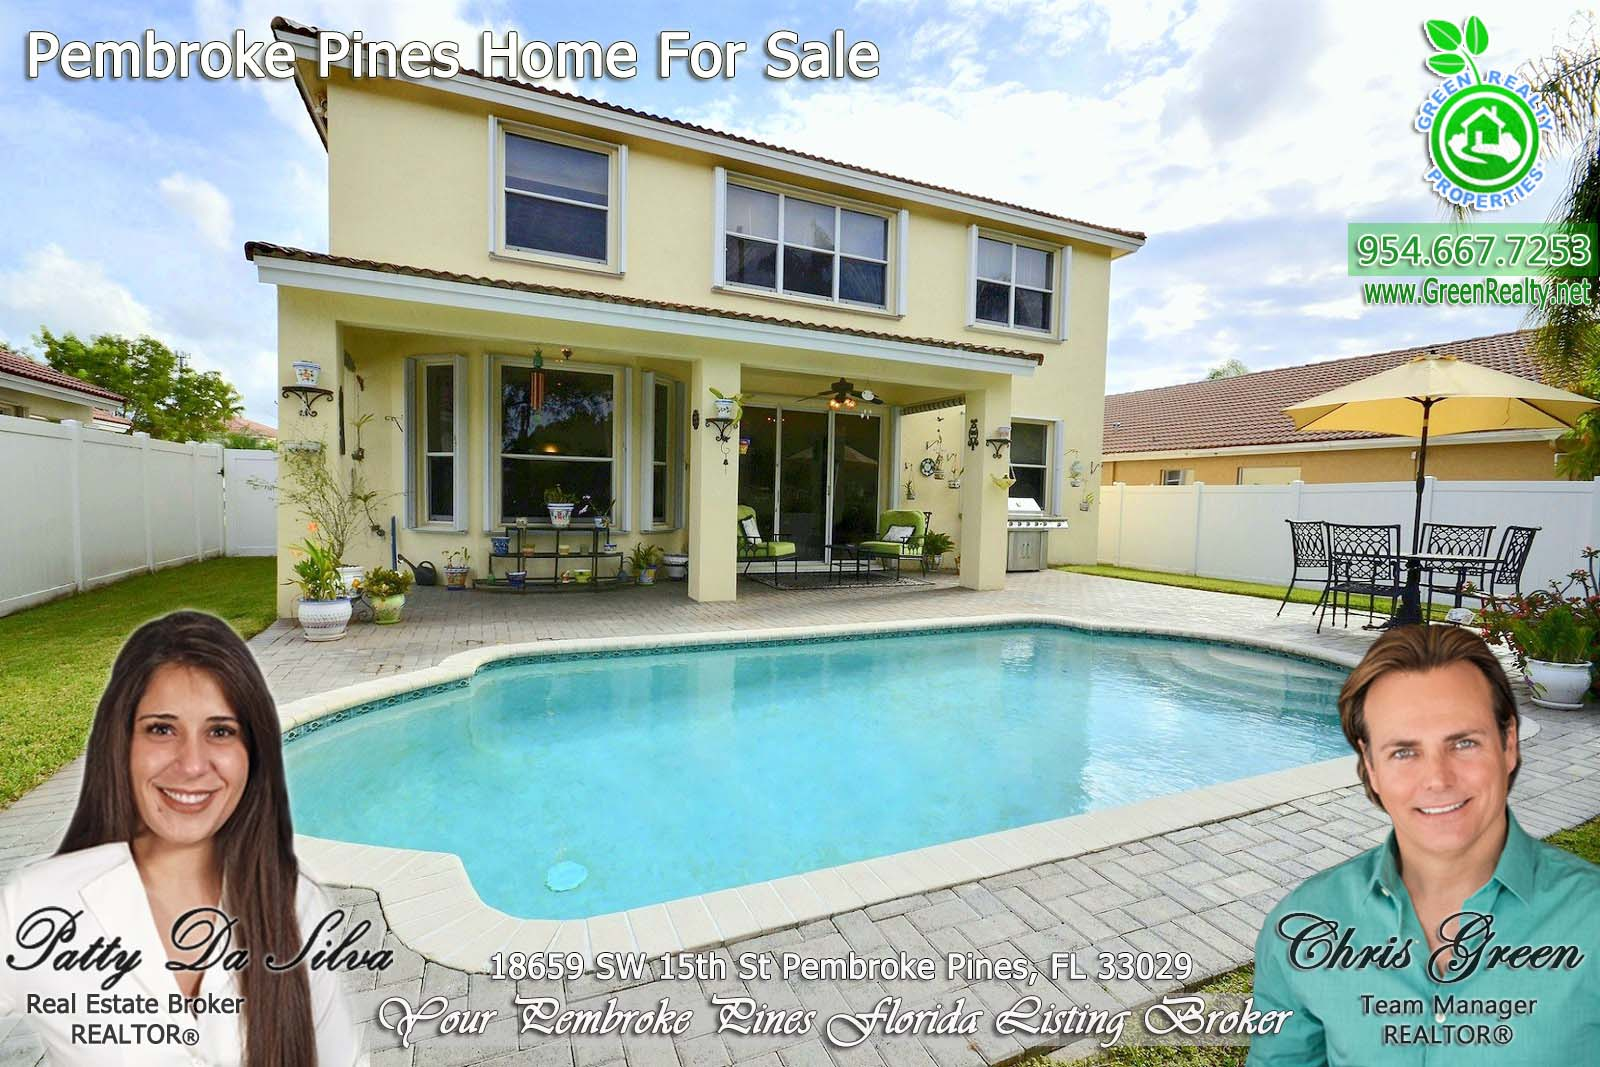 50 Homes For Sale in Pembroke Pines (2)